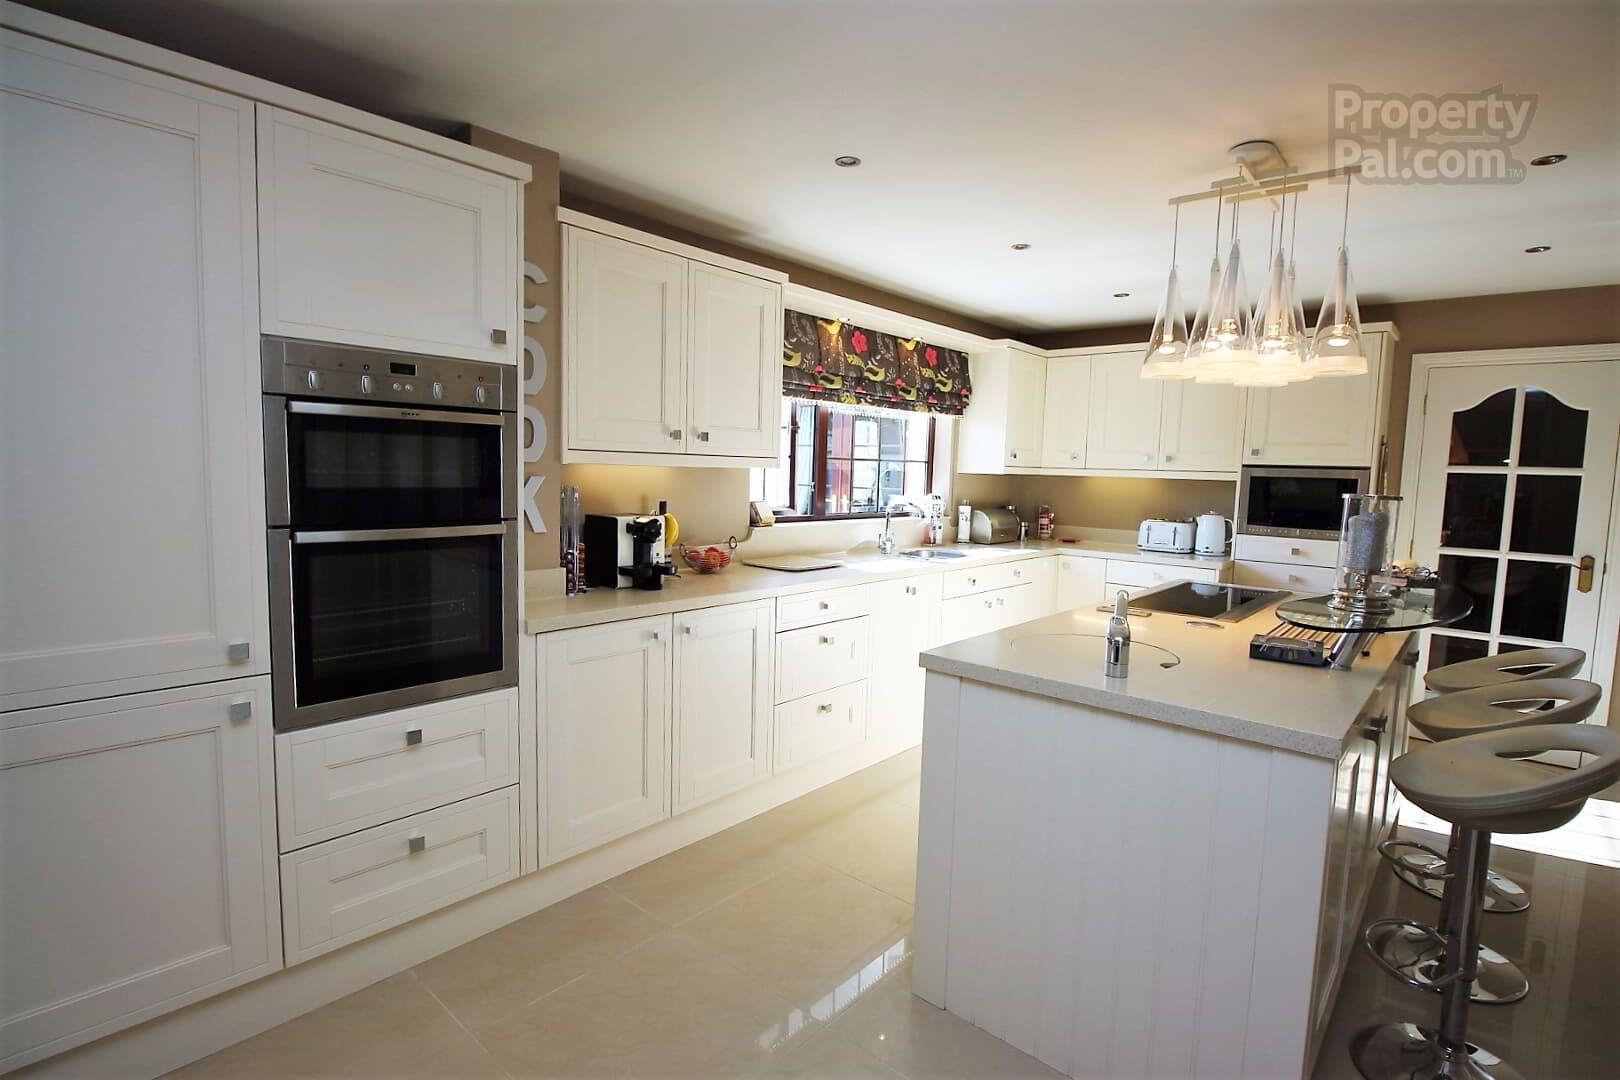 7 Beechwood Court Moira Kitchen Kitchen Cabinets Property For Sale